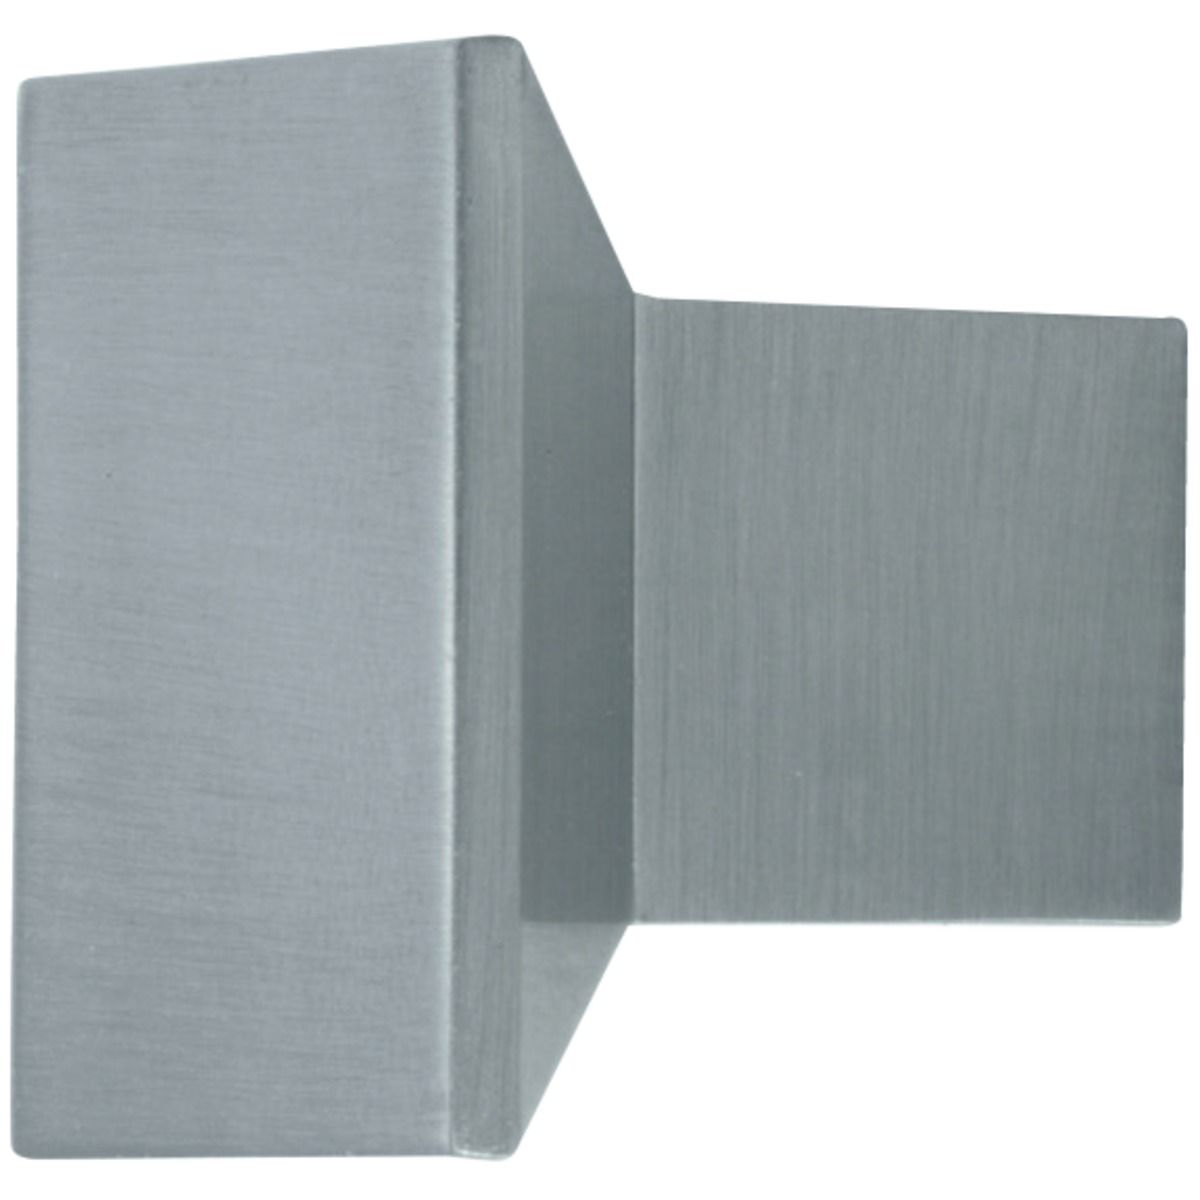 Wickes Bathroom Unit Square Knob Handle   Stainless Steel 35mm by Wickes